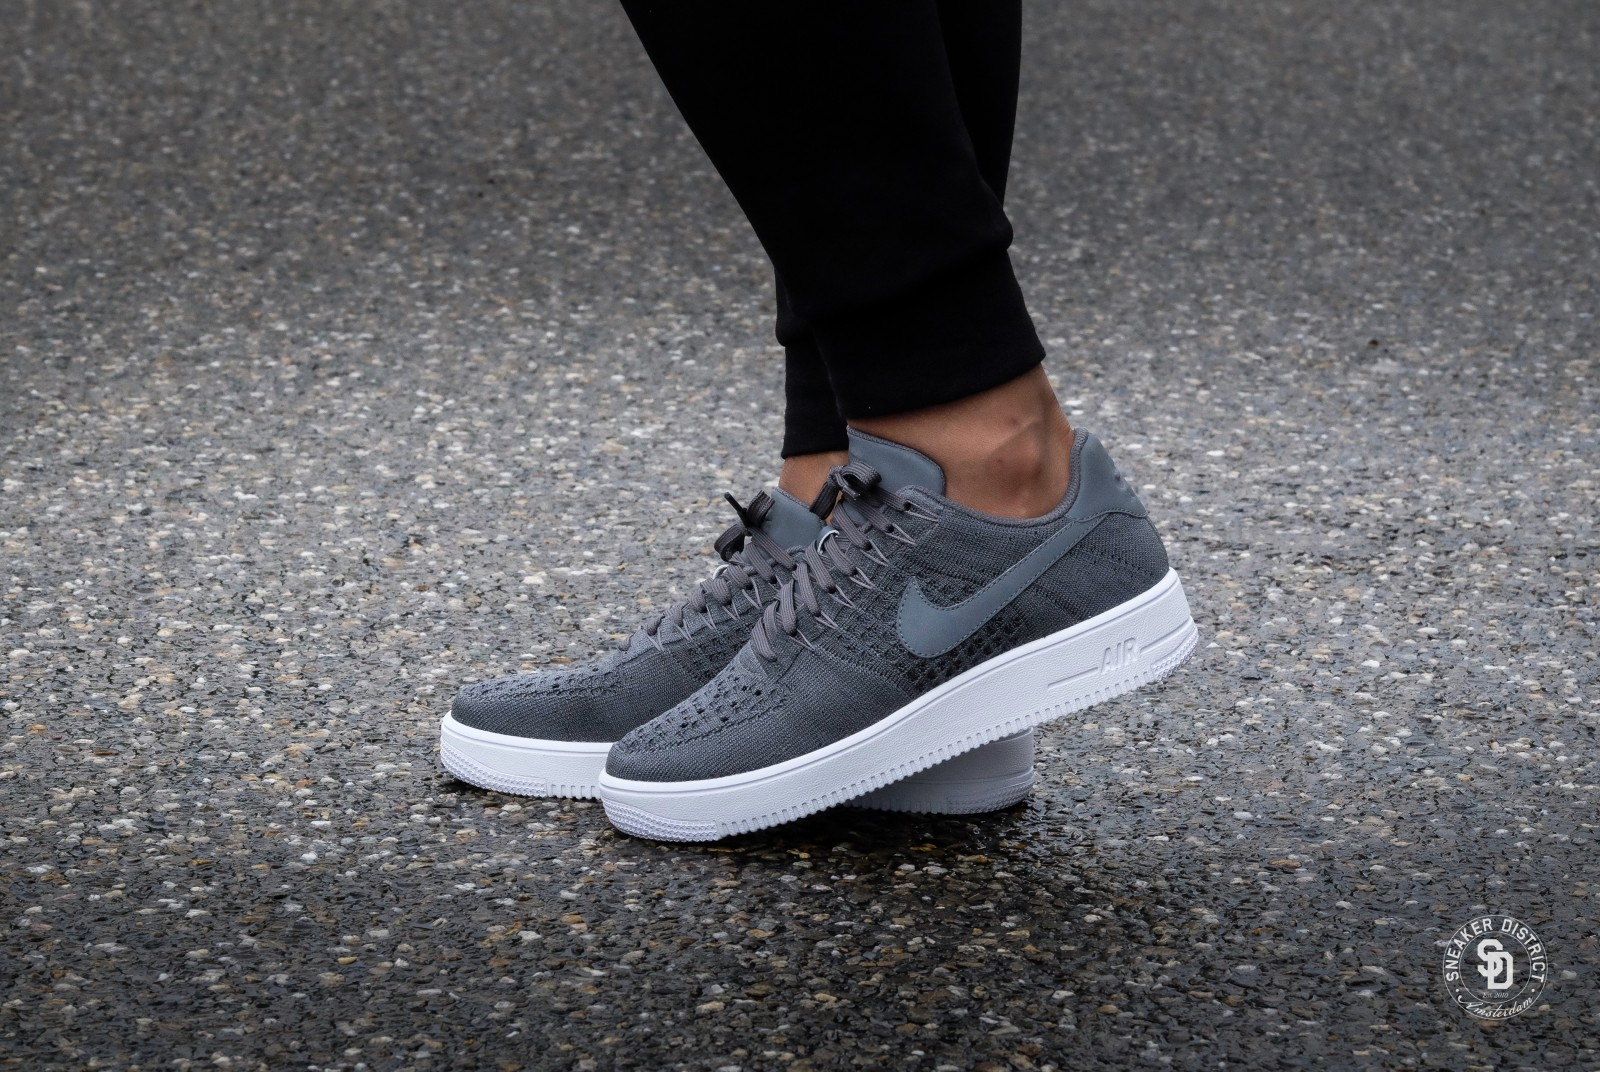 Nike Air Force 1 Ultra Flyknit Low Dark Grey/White